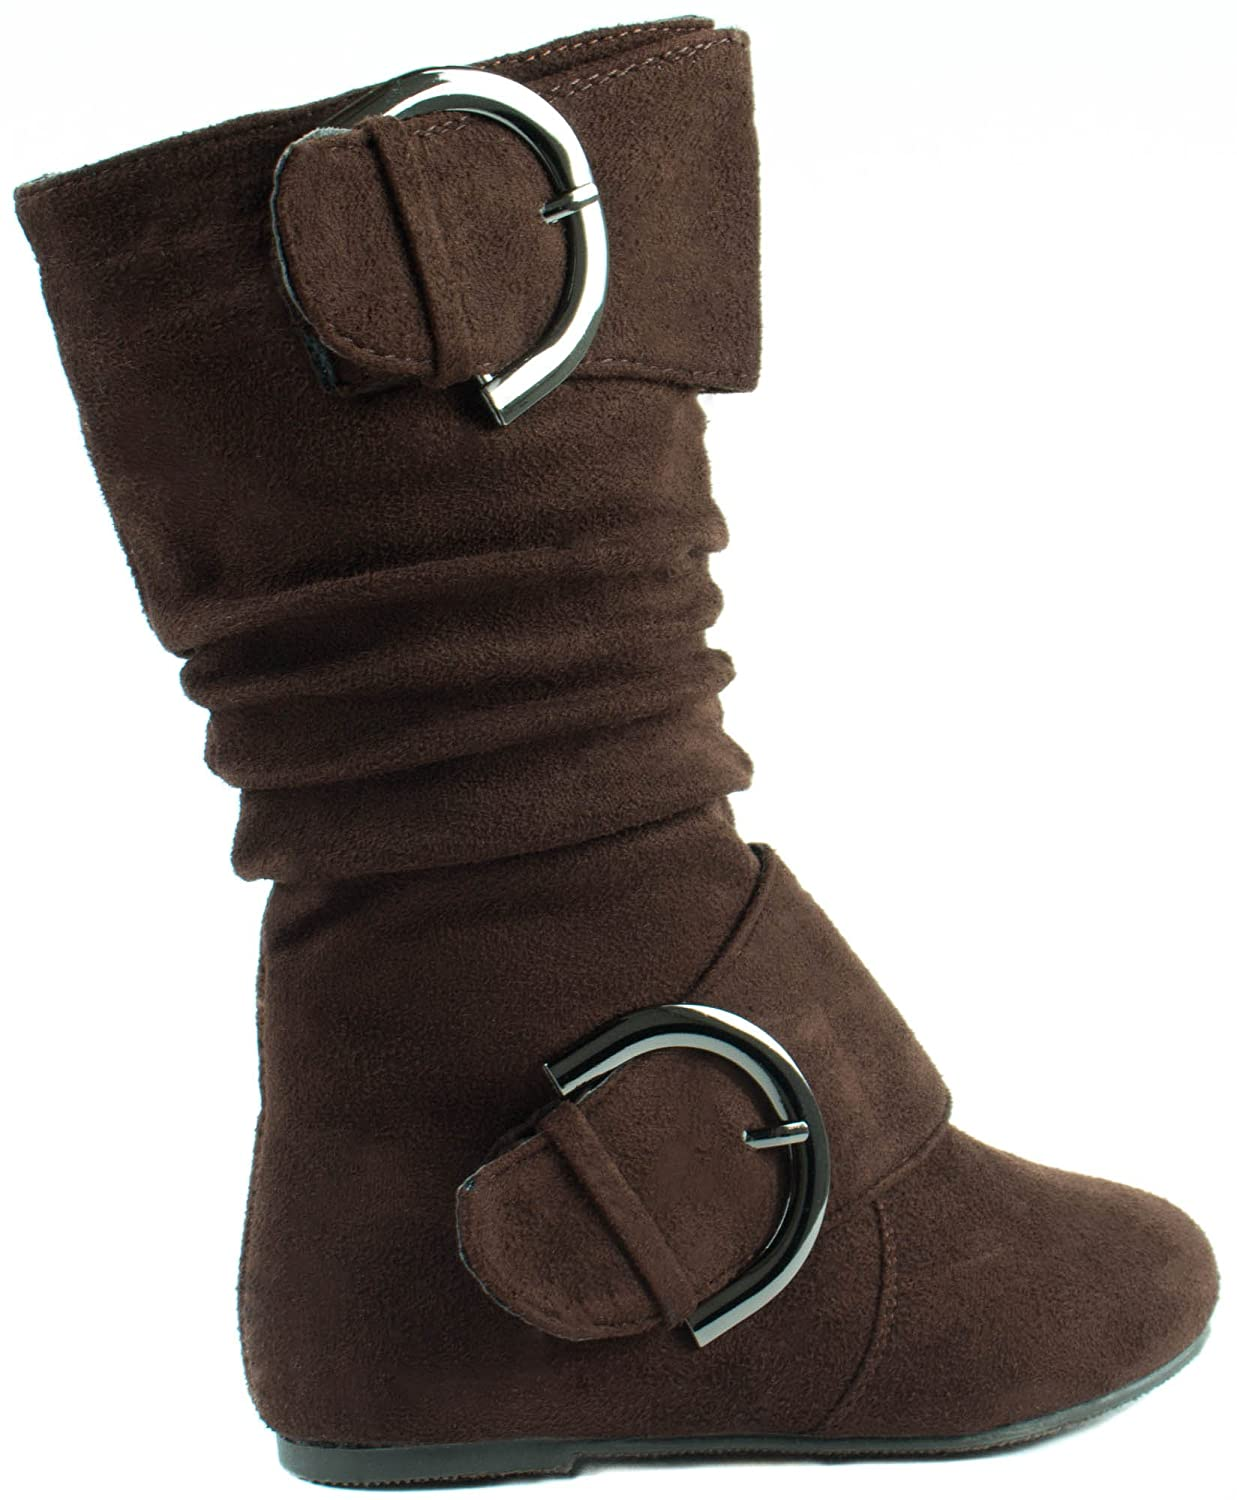 Lucky Top Little Girls Data-80K Suede Boots with Two Buckle Straps